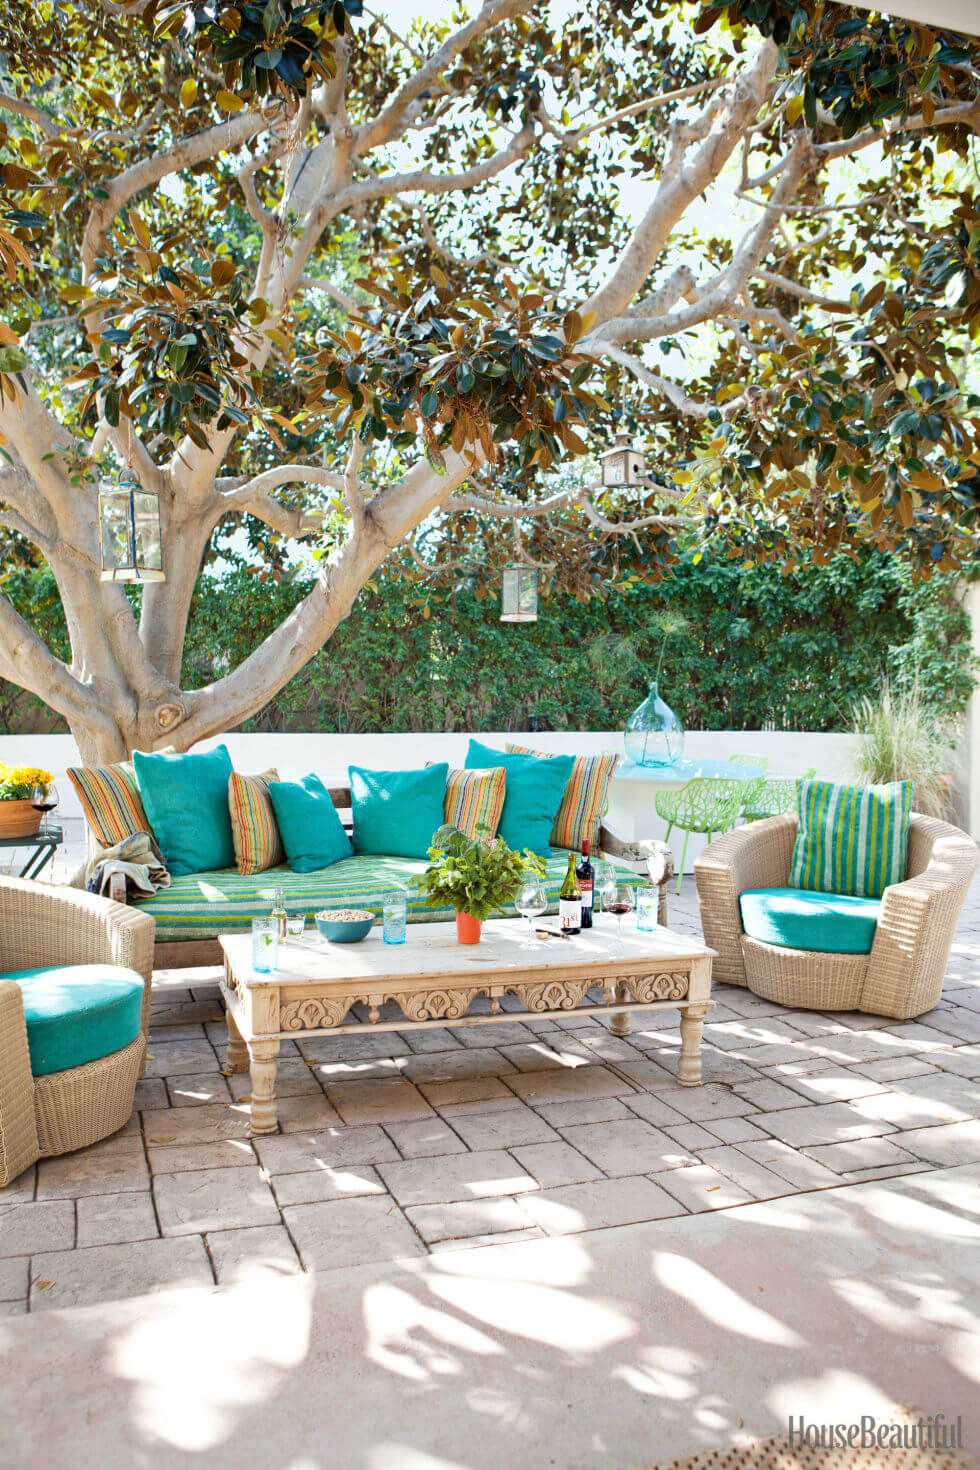 Outdoor Living Area with Blue and Striped Accents